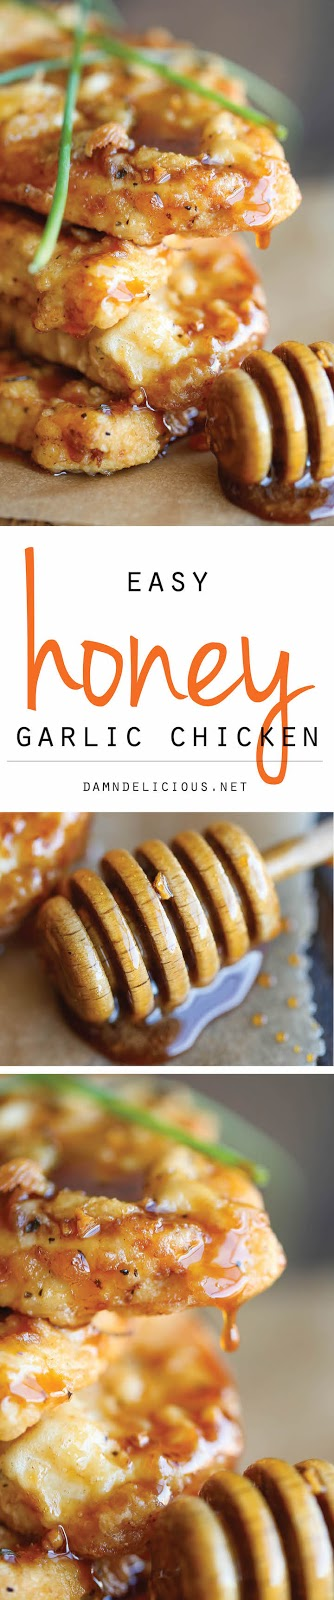 HONEY GARLIC CHICKEN RECIPES